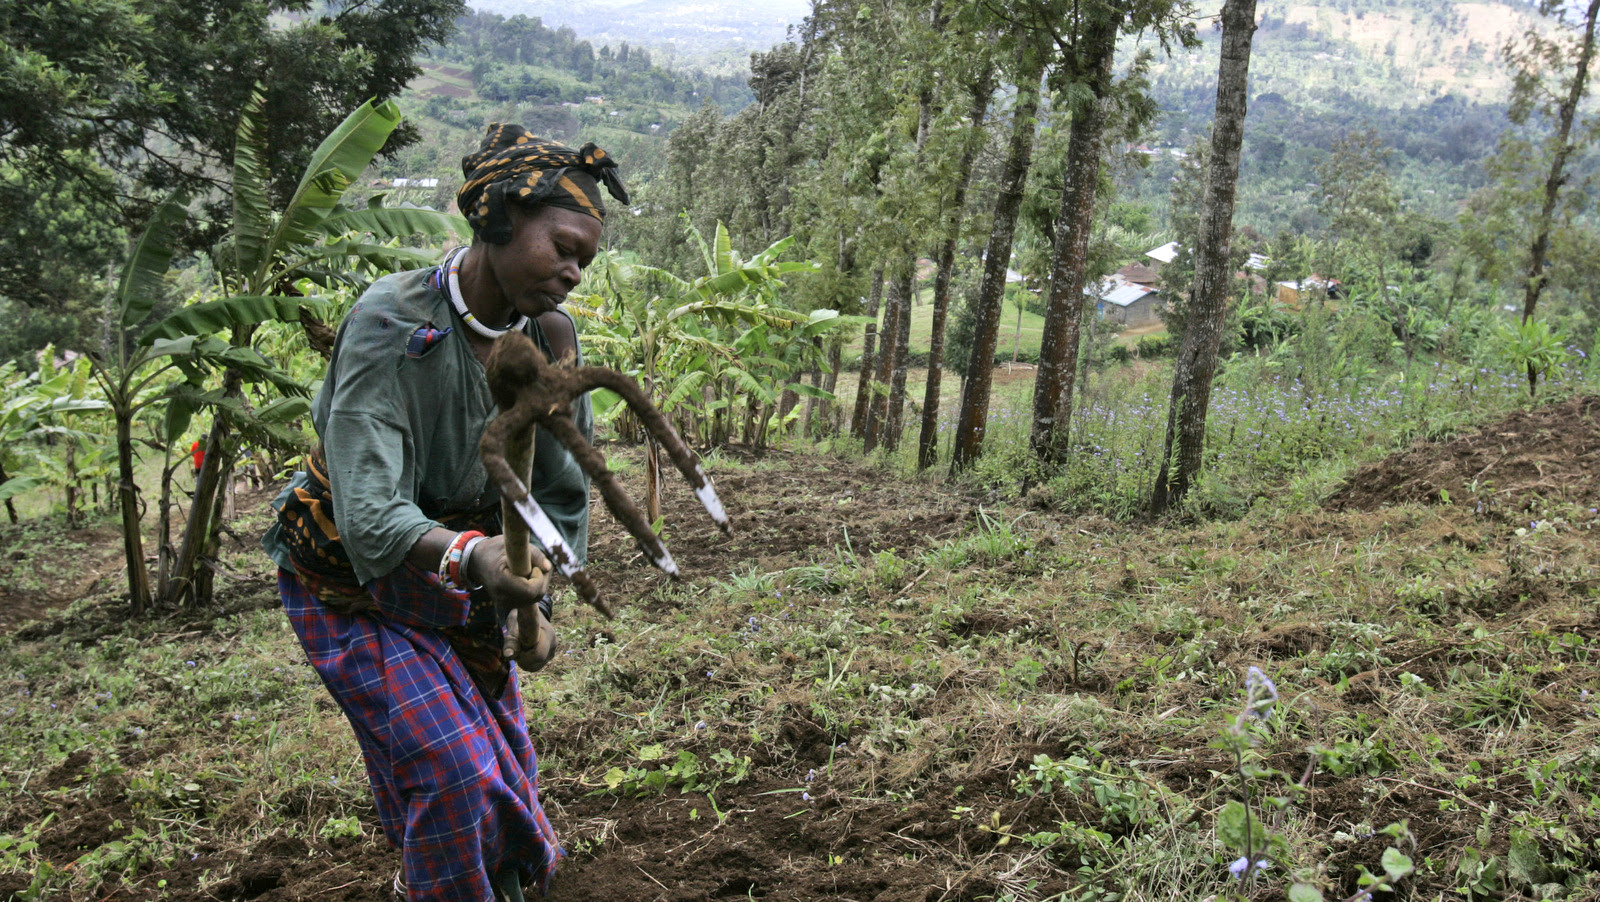 A woman works a field near the Tanzanian town of Arusha. (AP/Karel Prinsloo)